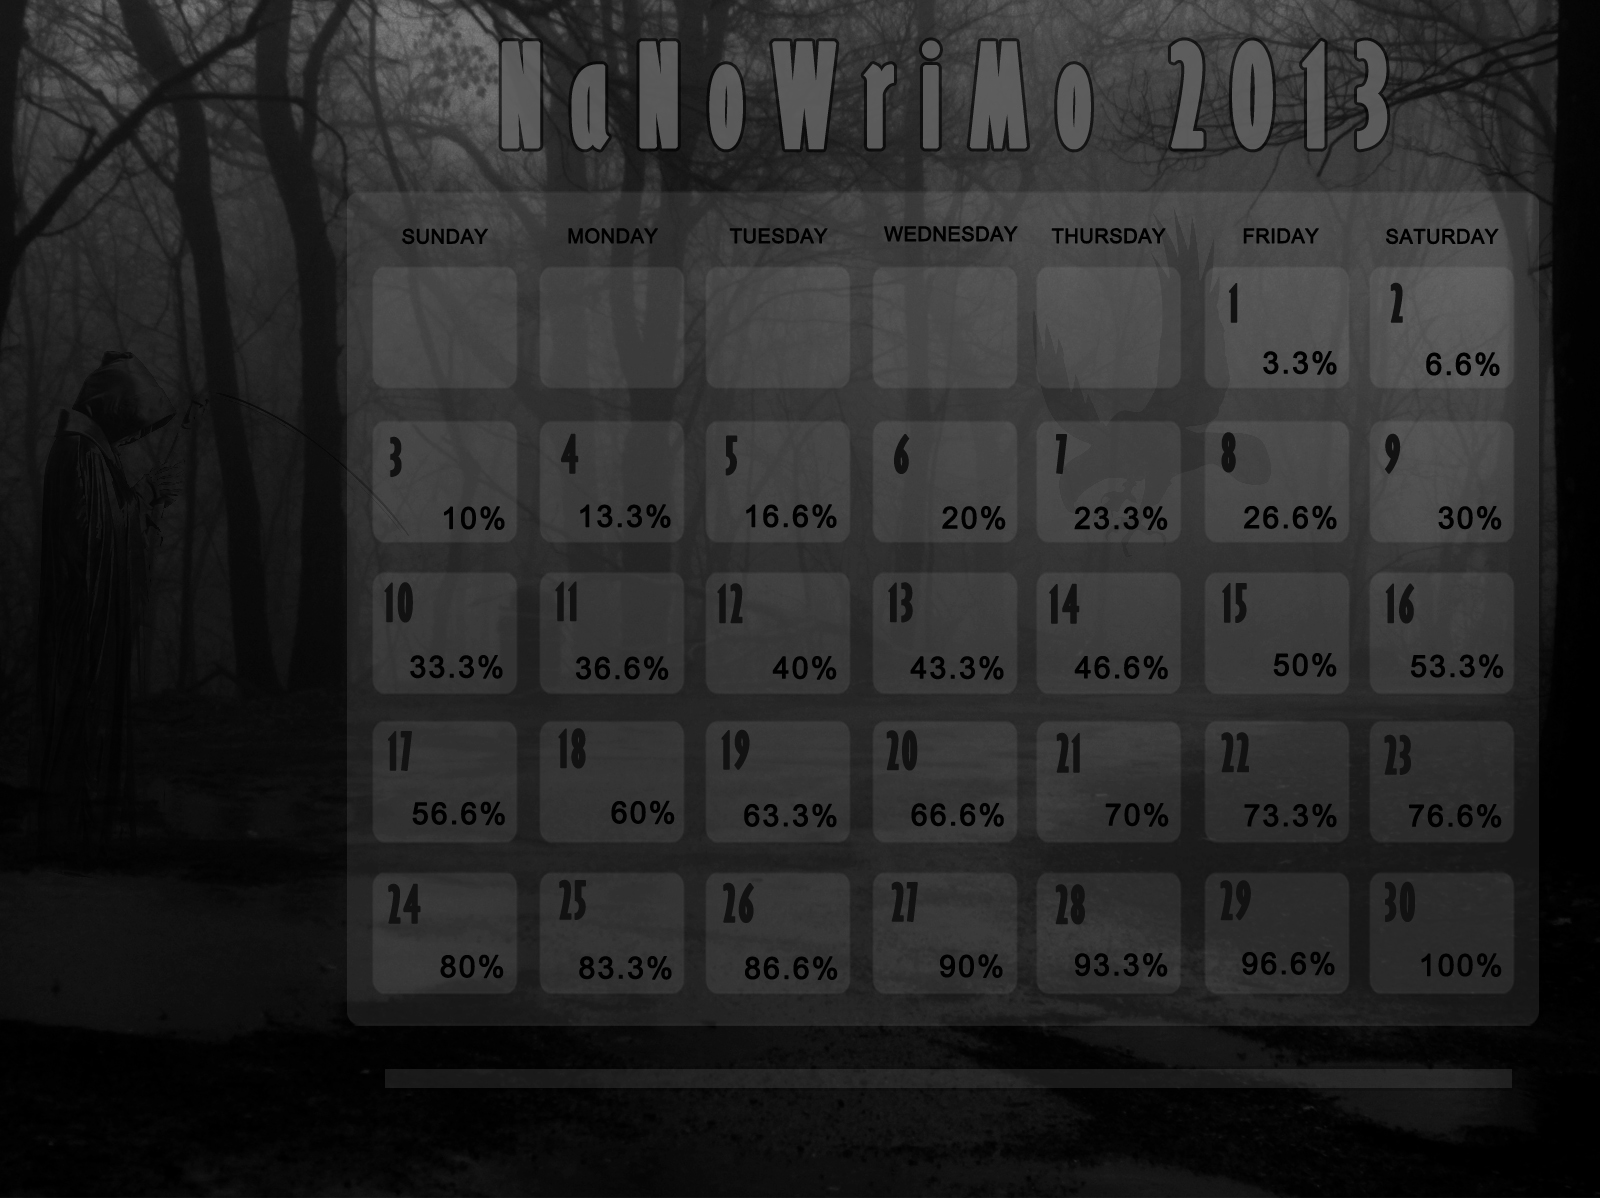 S. M. Worth: NaNoWriMo 2013 Calendar Wallpapers